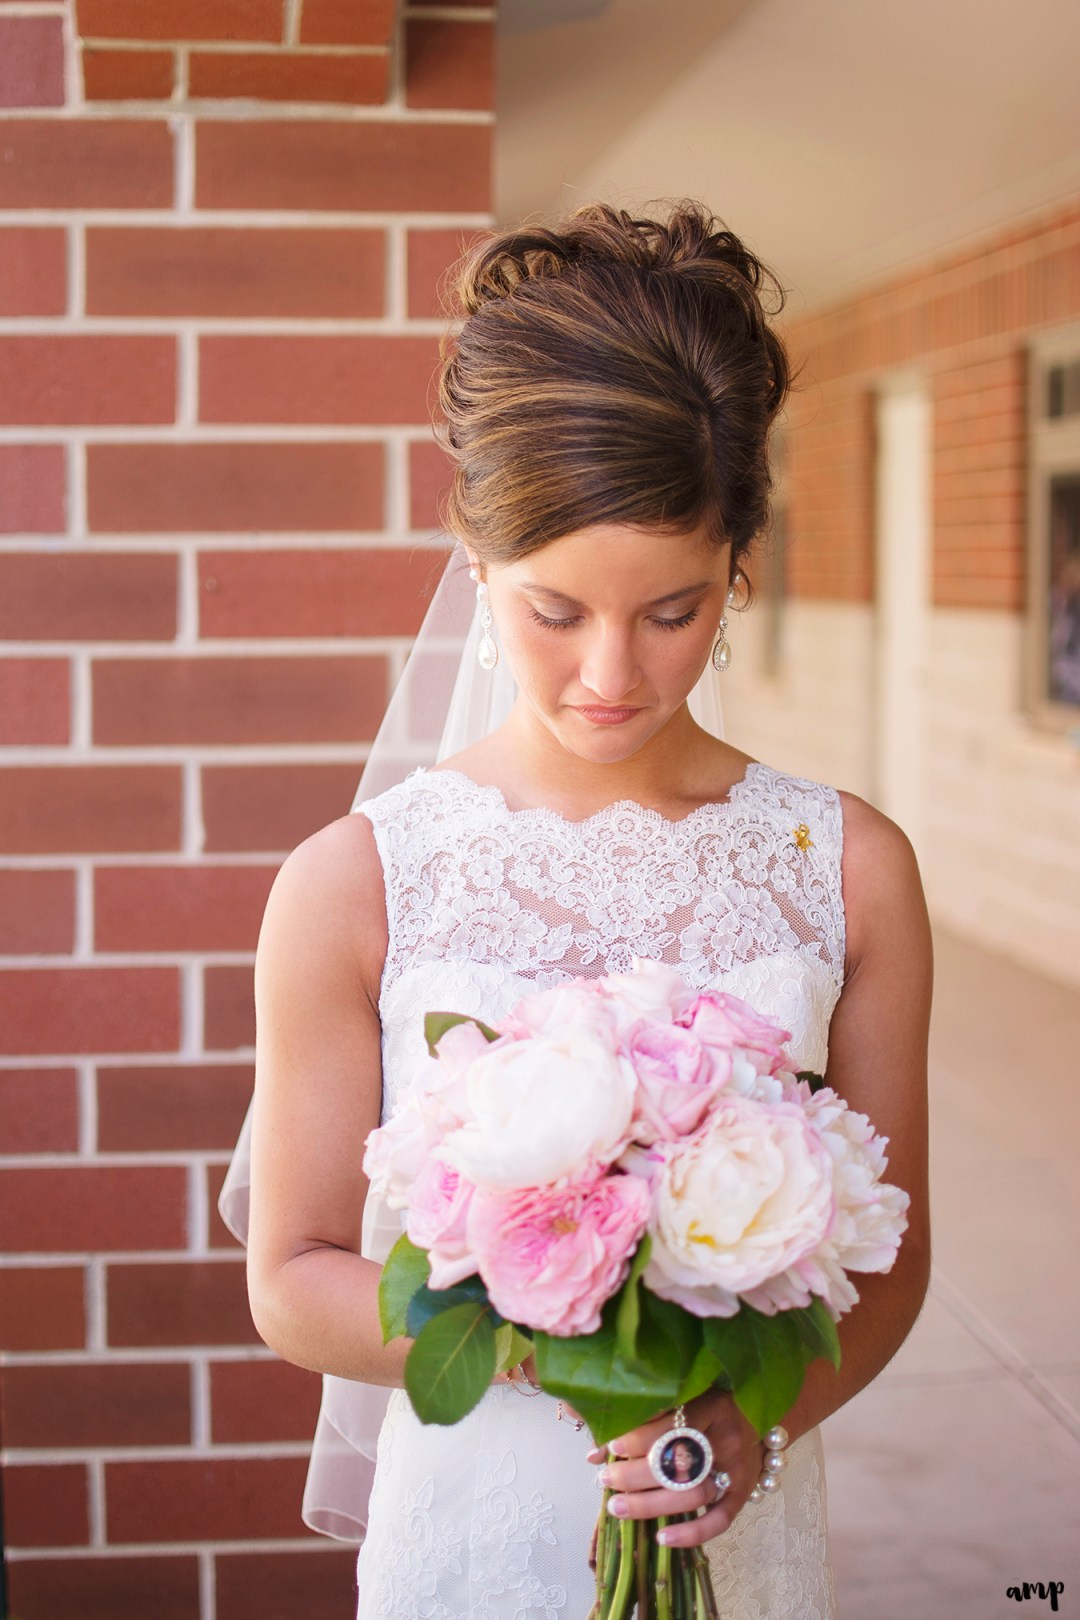 Bride with her pink wedding bouquet